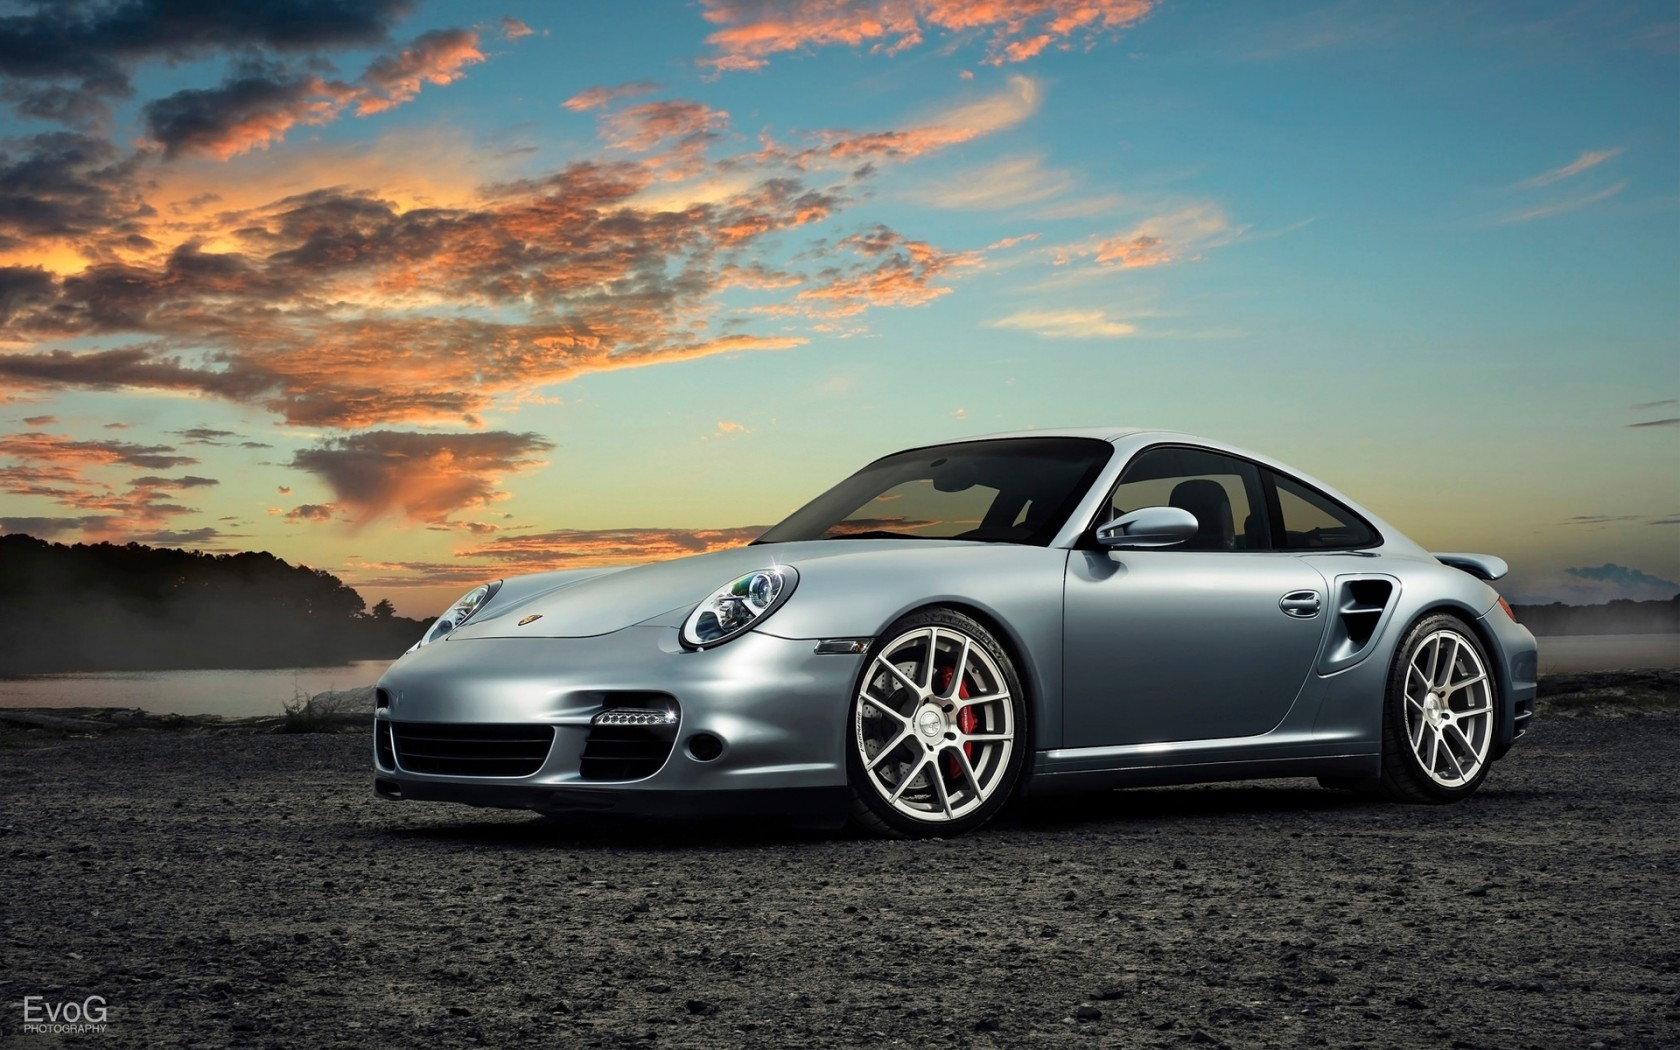 Porsche 911 Turbo Avant Garde Wallpaper HD Car